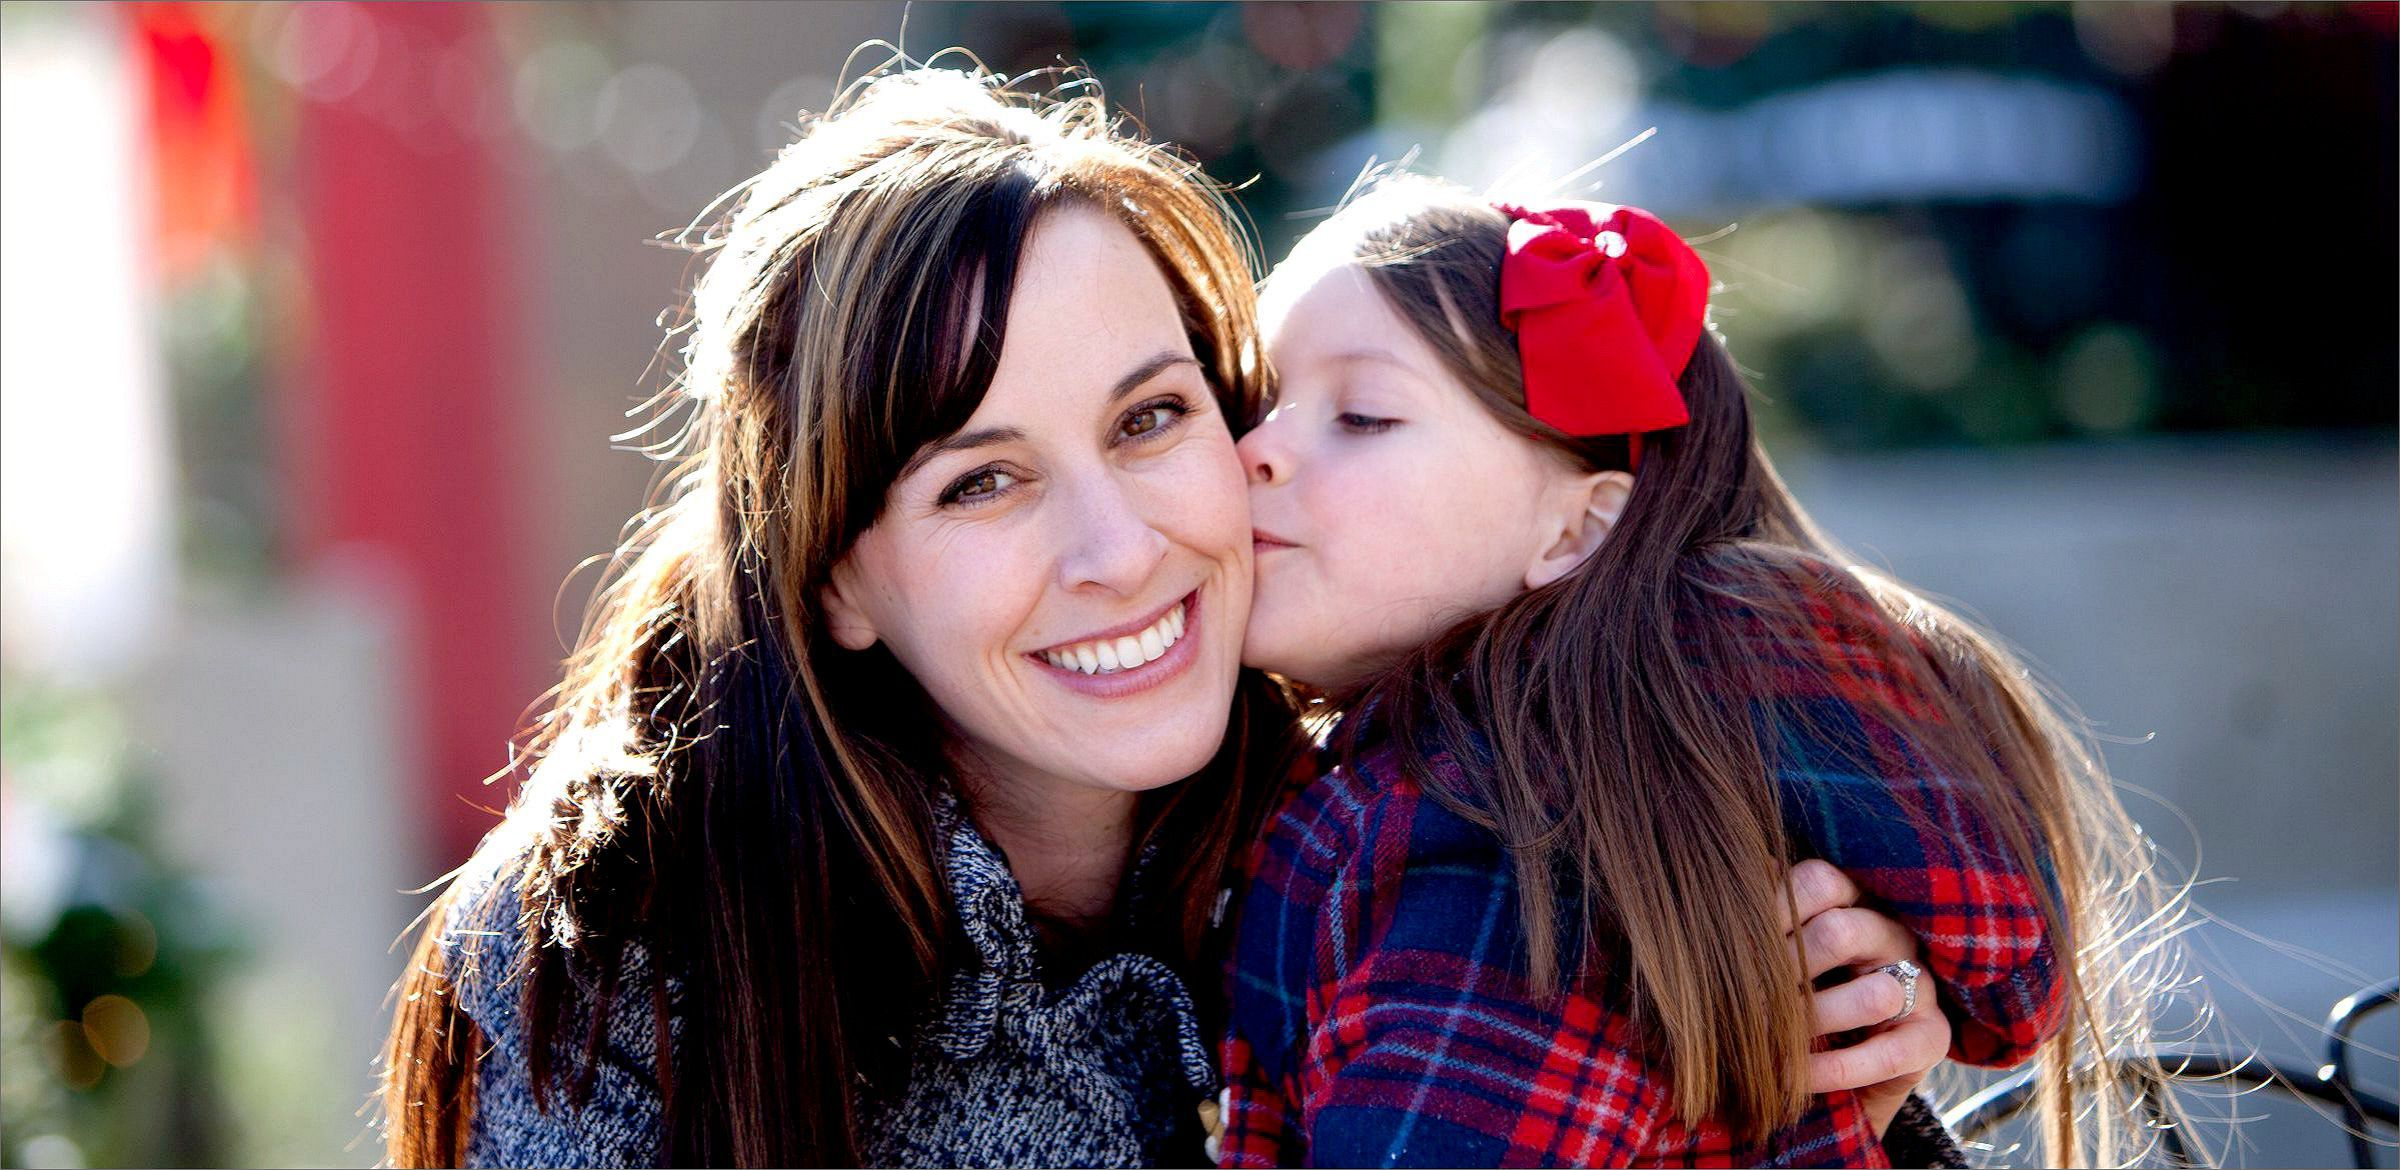 Daughter kissing her mom on the cheek  during a photo shoot at Little Man Ice Cream's Tree Farm